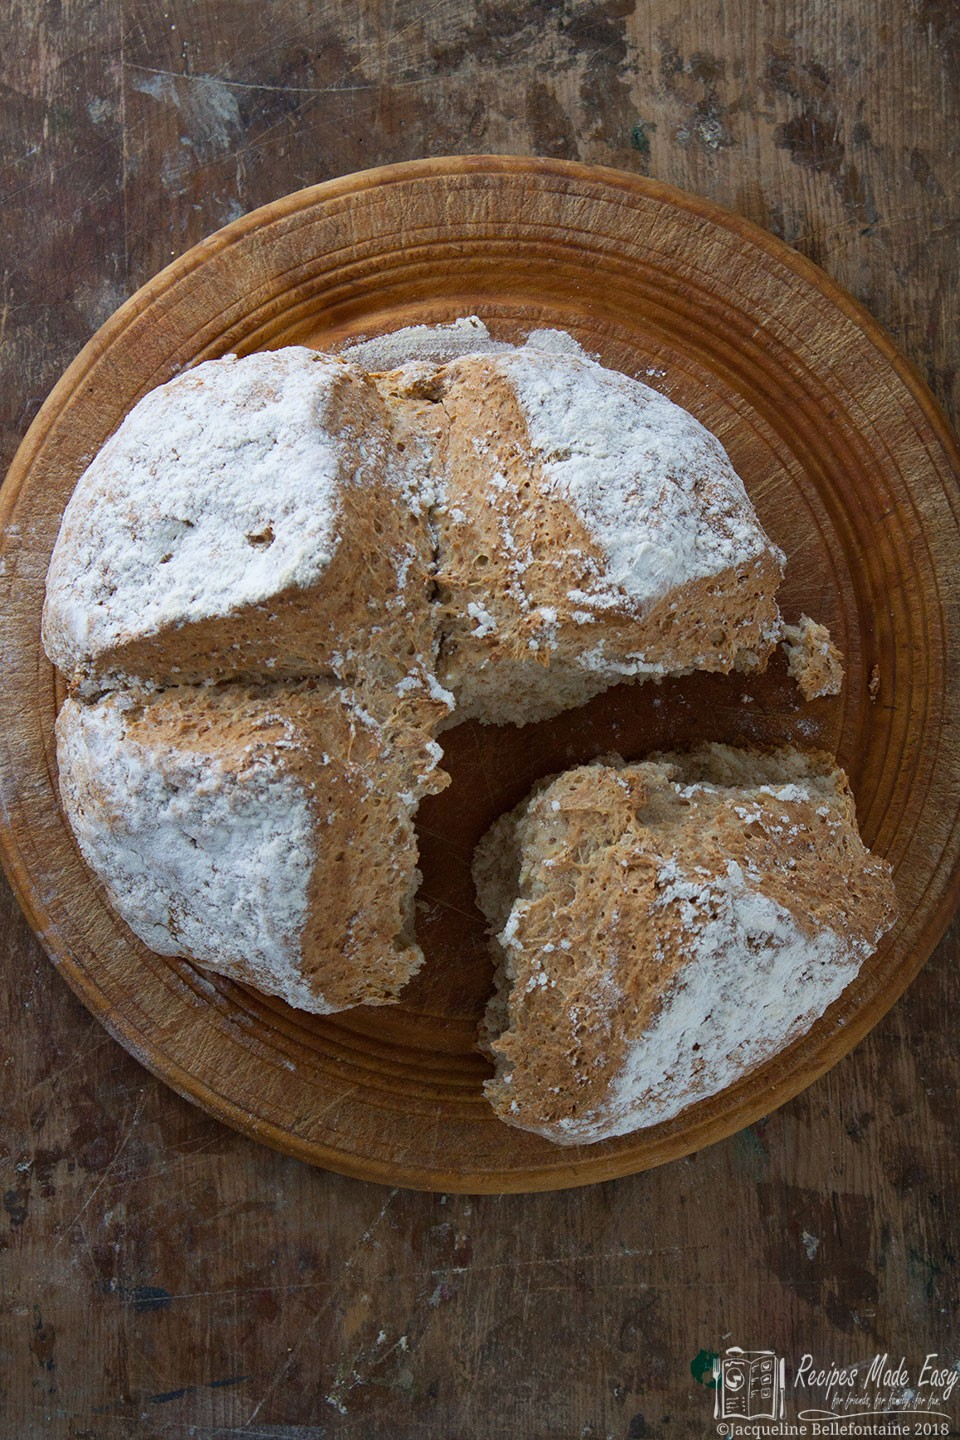 One of the easiest and quickest breads to make, soda bread is ideal when you need a loaf in a hurry.